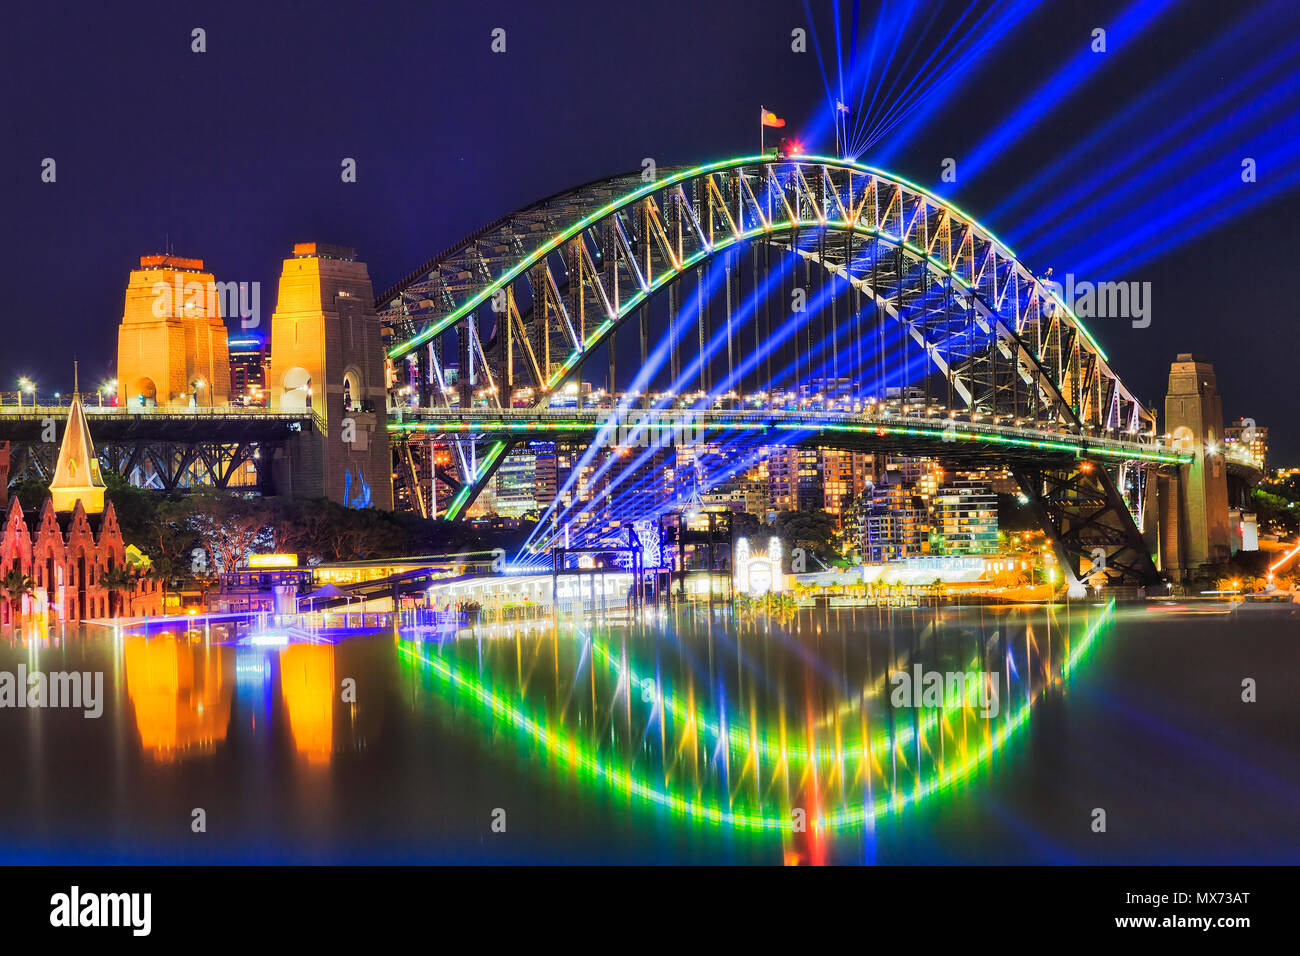 Blue bright beams of laser under arch of the Sydney harbour bridge during Vivid Sydney light show festival with reflection of lights. - Stock Image